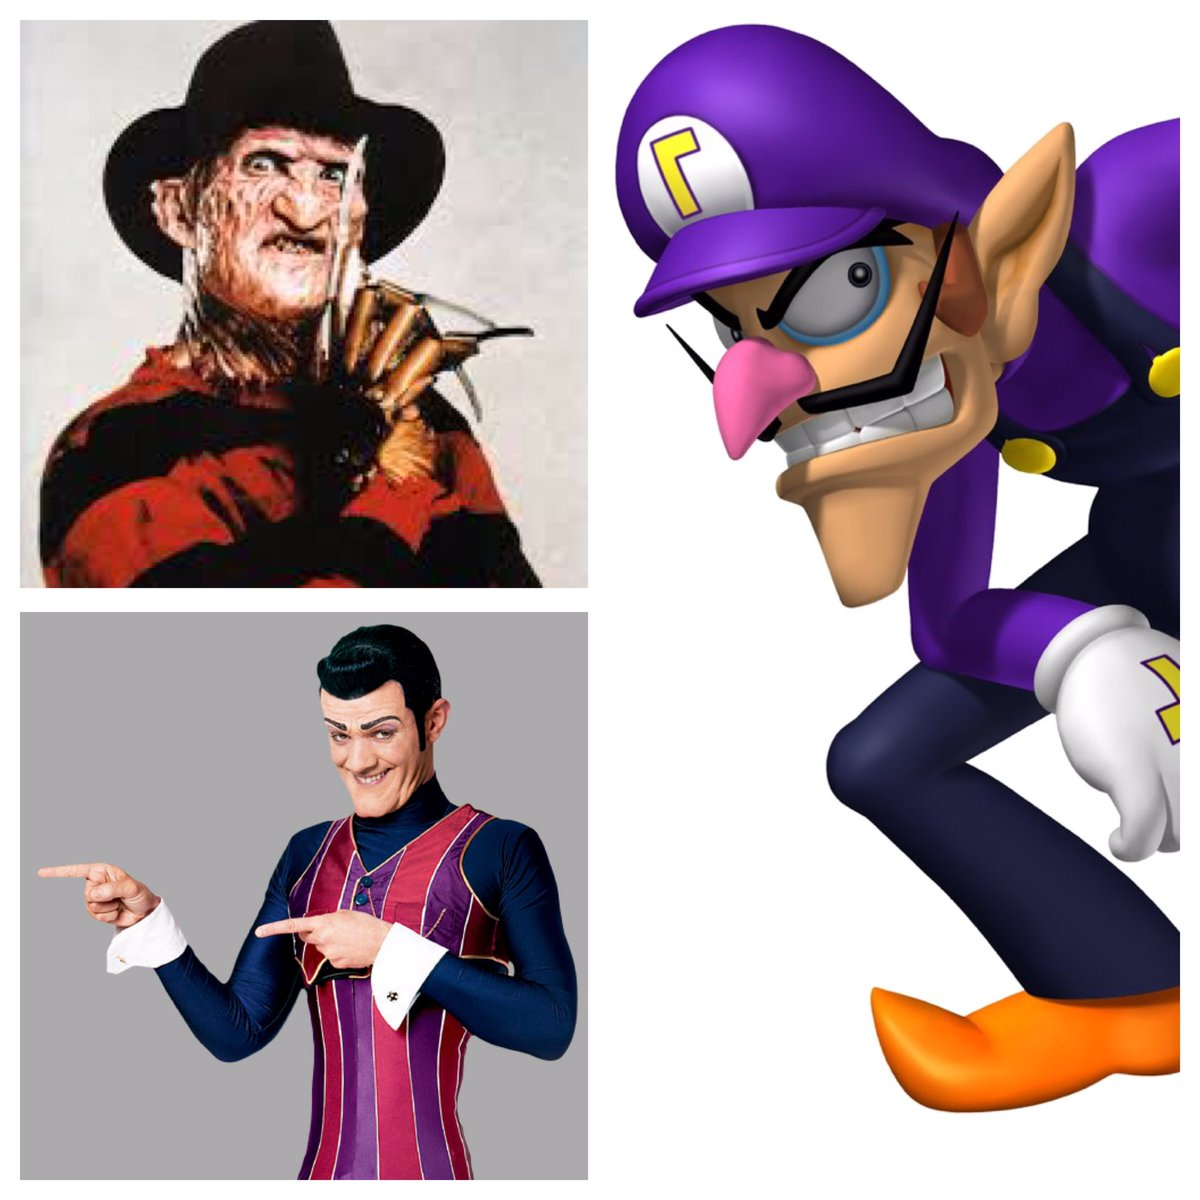 Waluigi learned his evil ways from his parents, Freddy and Robbie. Adopt me. #InstantFanTheory #FreddyKrueger #RobbieRotten #Waluigi<br>http://pic.twitter.com/kH2Sij551C